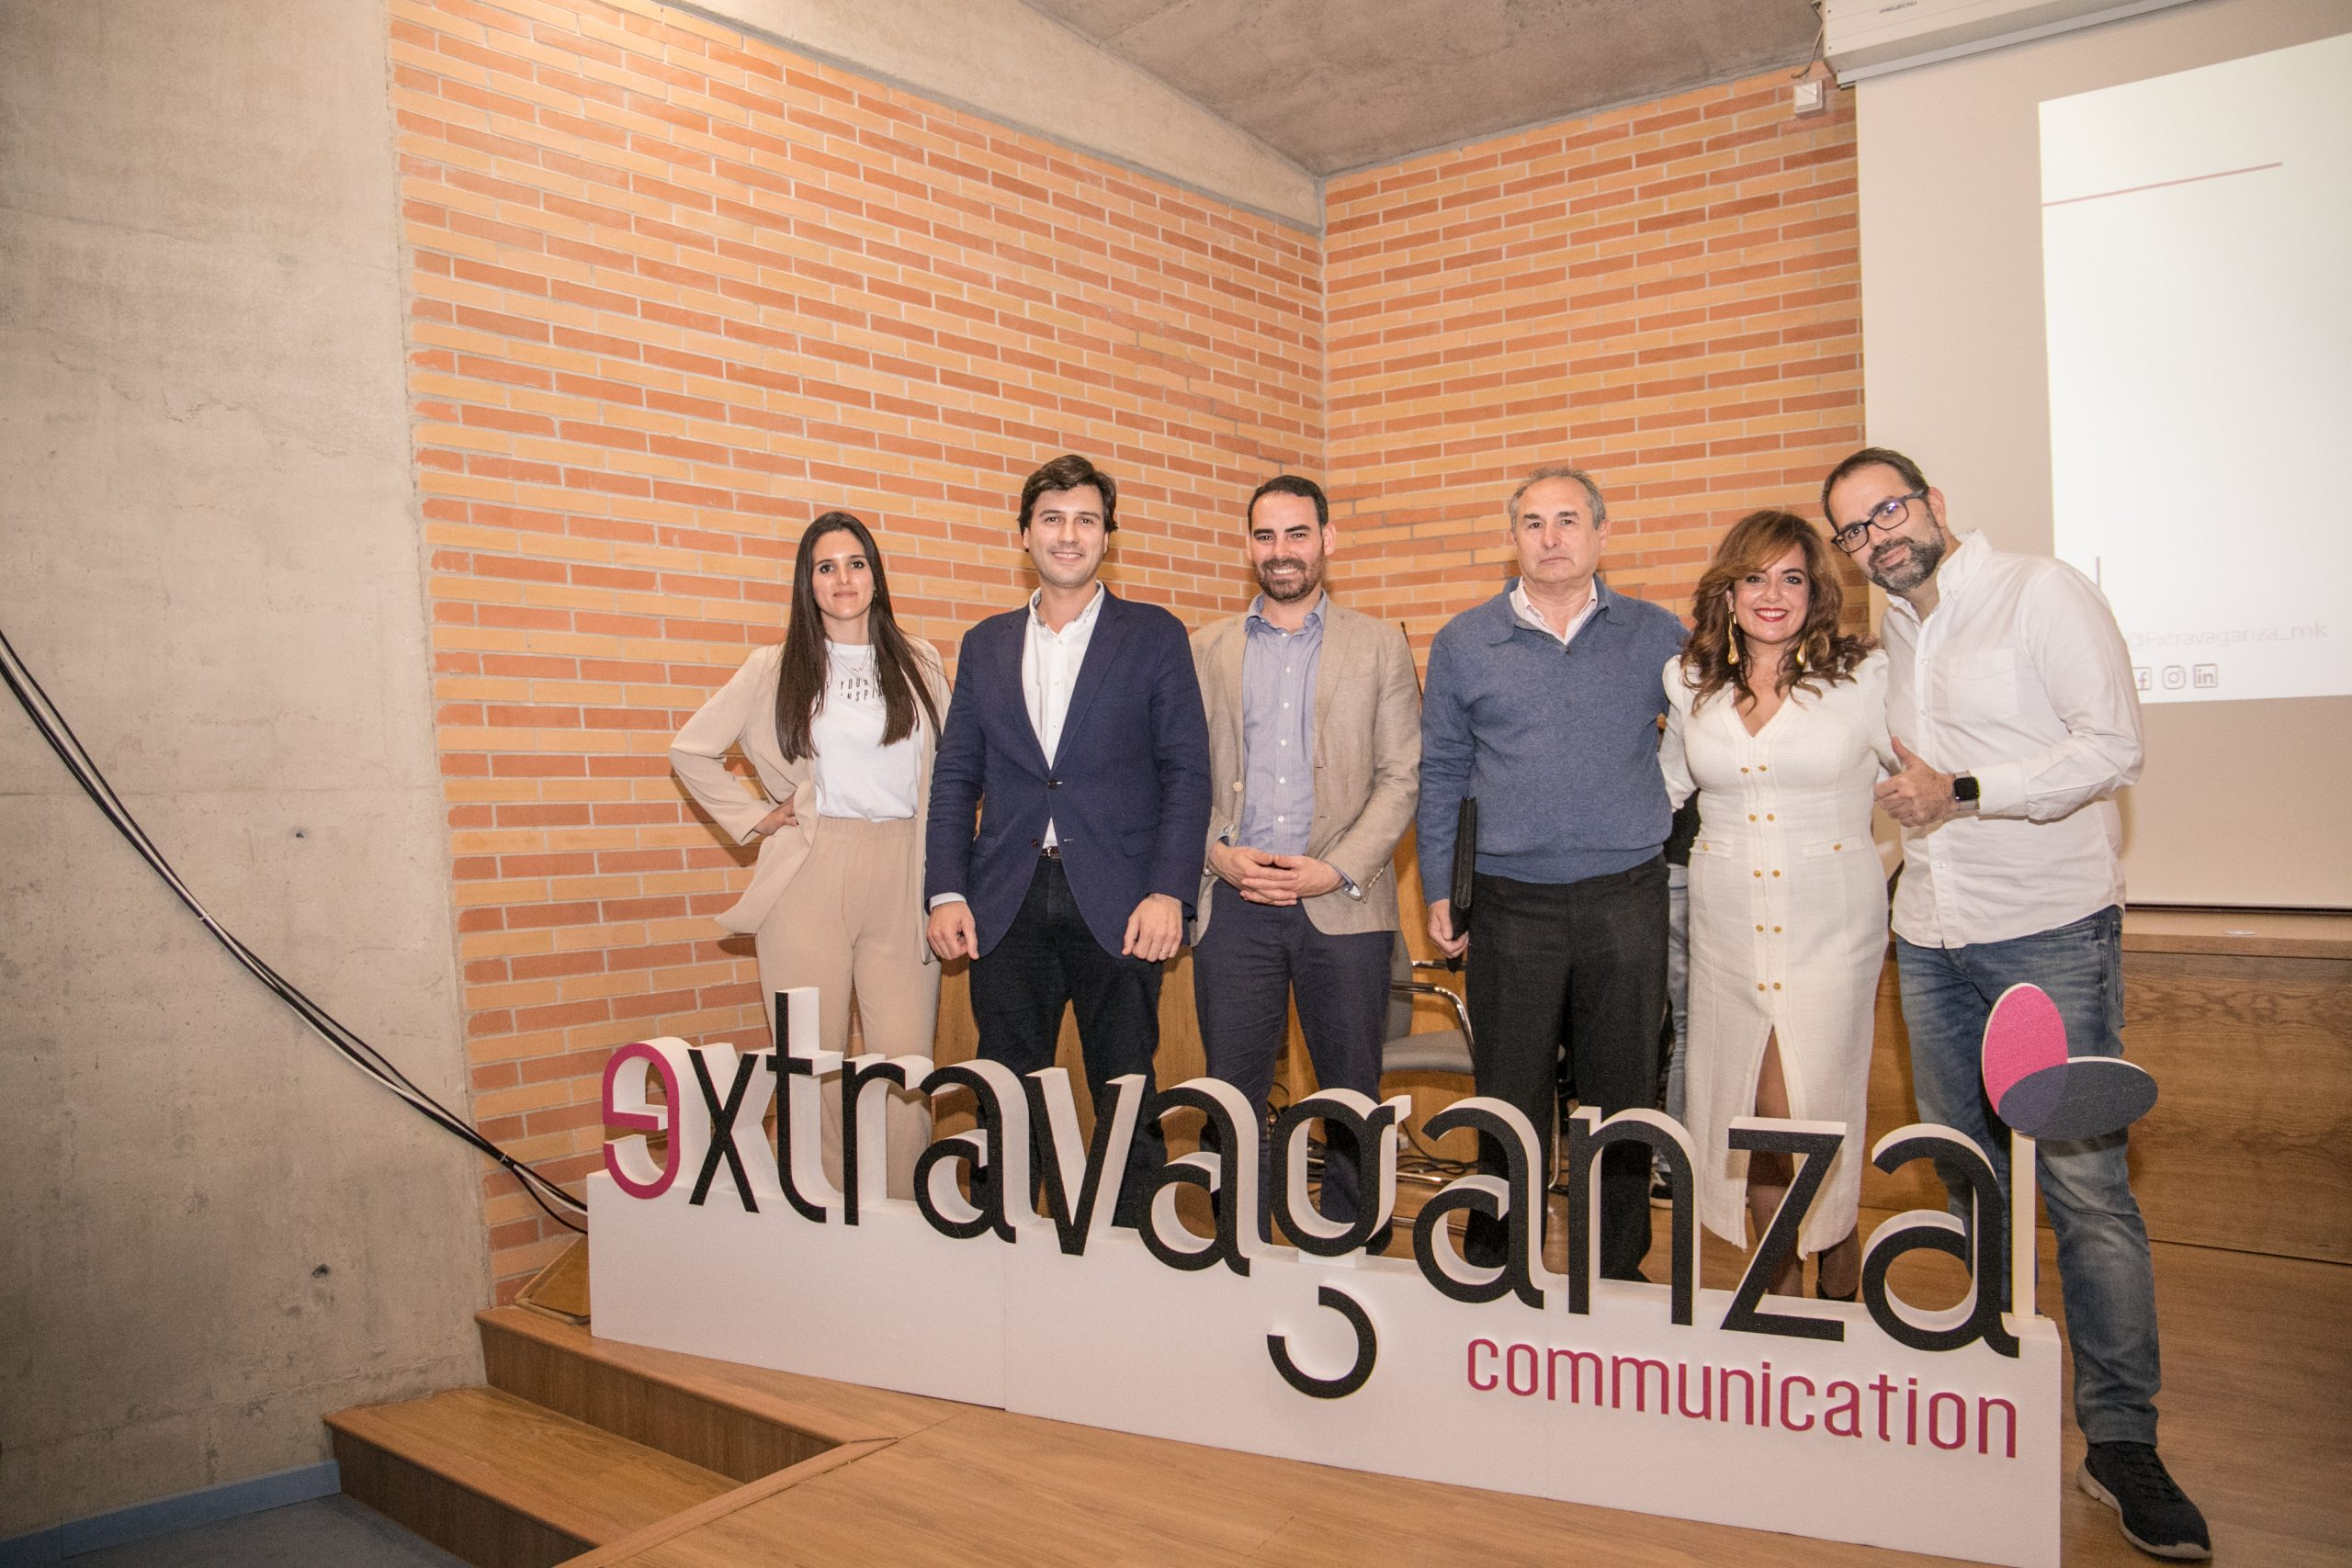 evento-marketing-empresas-tecnologicas4237